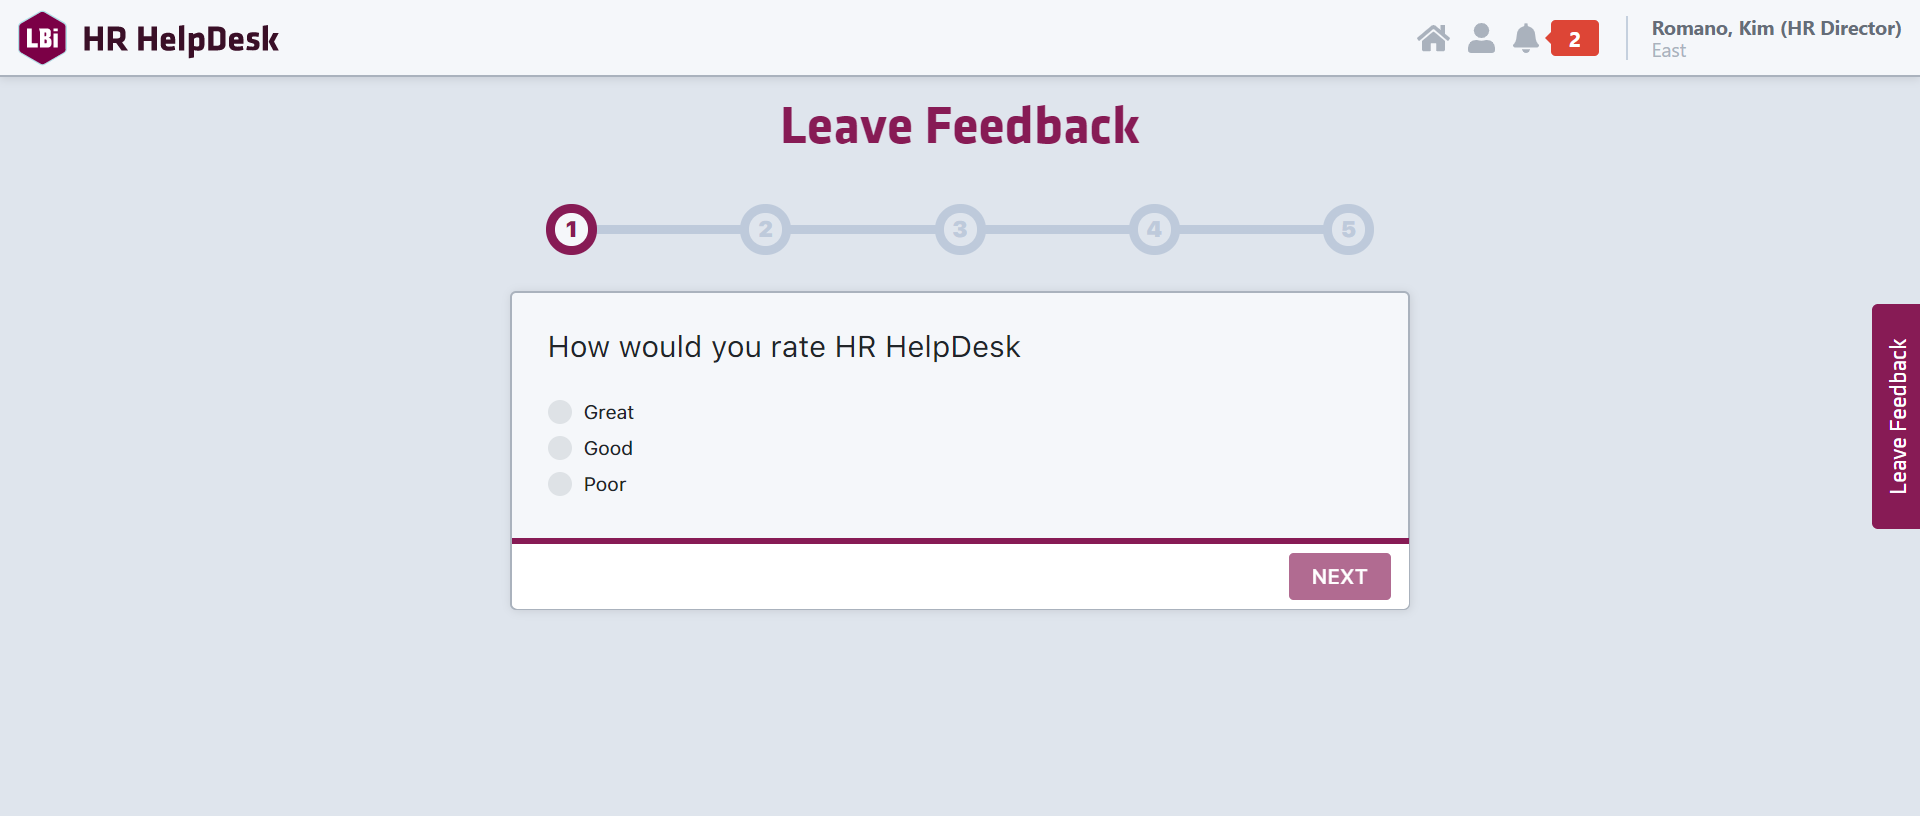 HR HelpDesk Portal Survey